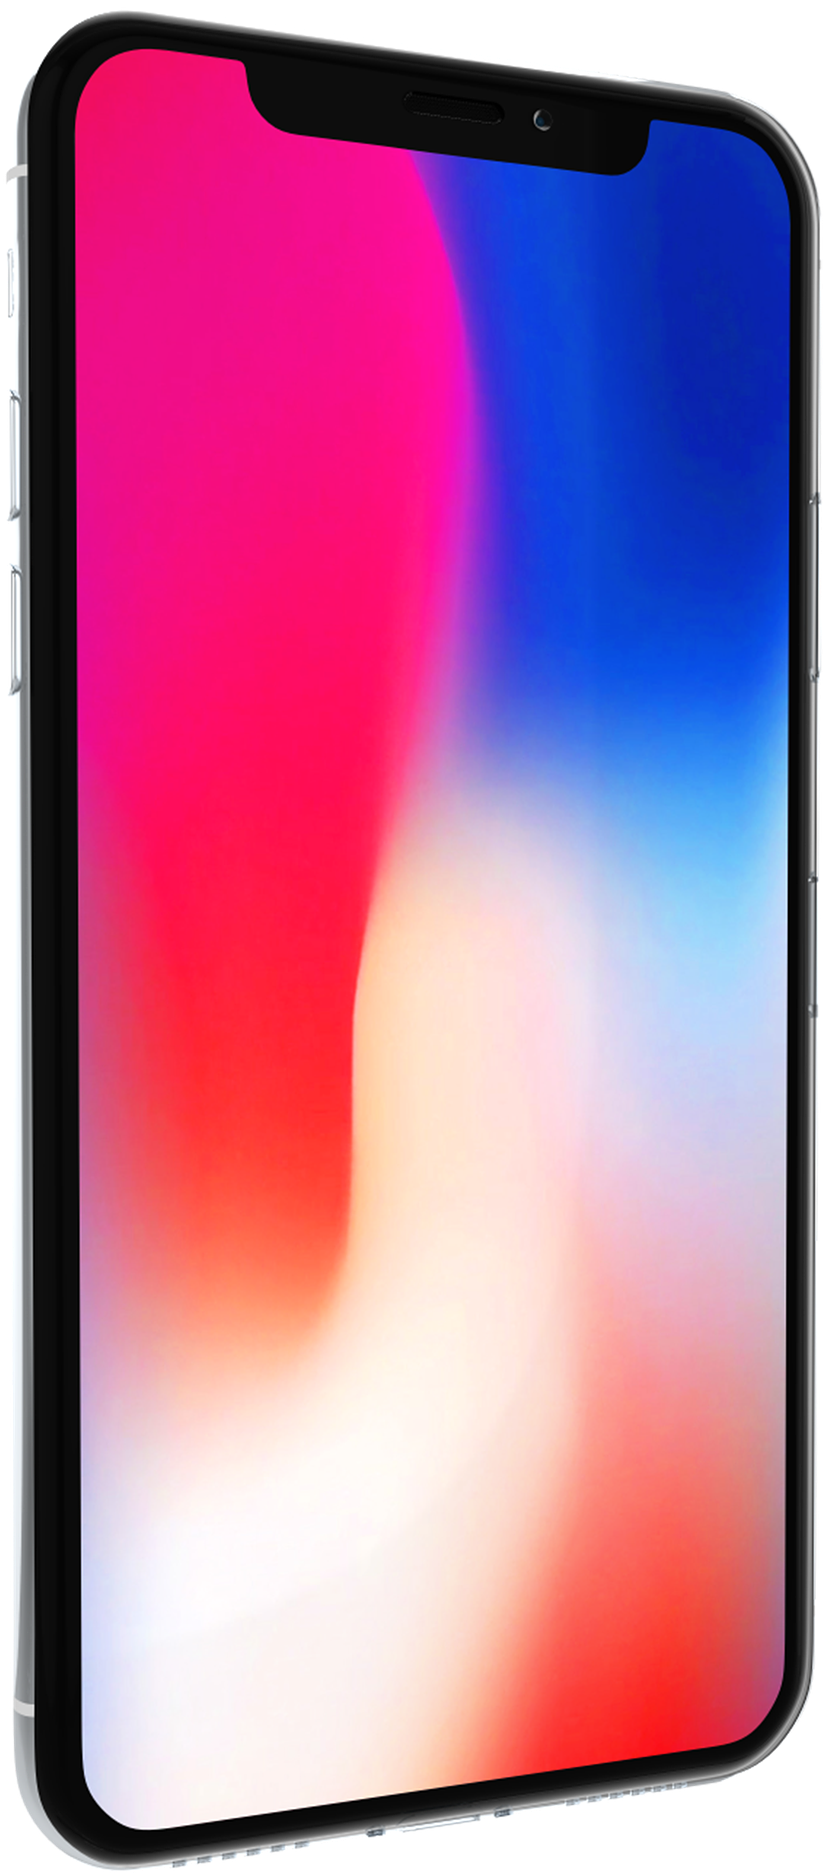 iphone x home screen background